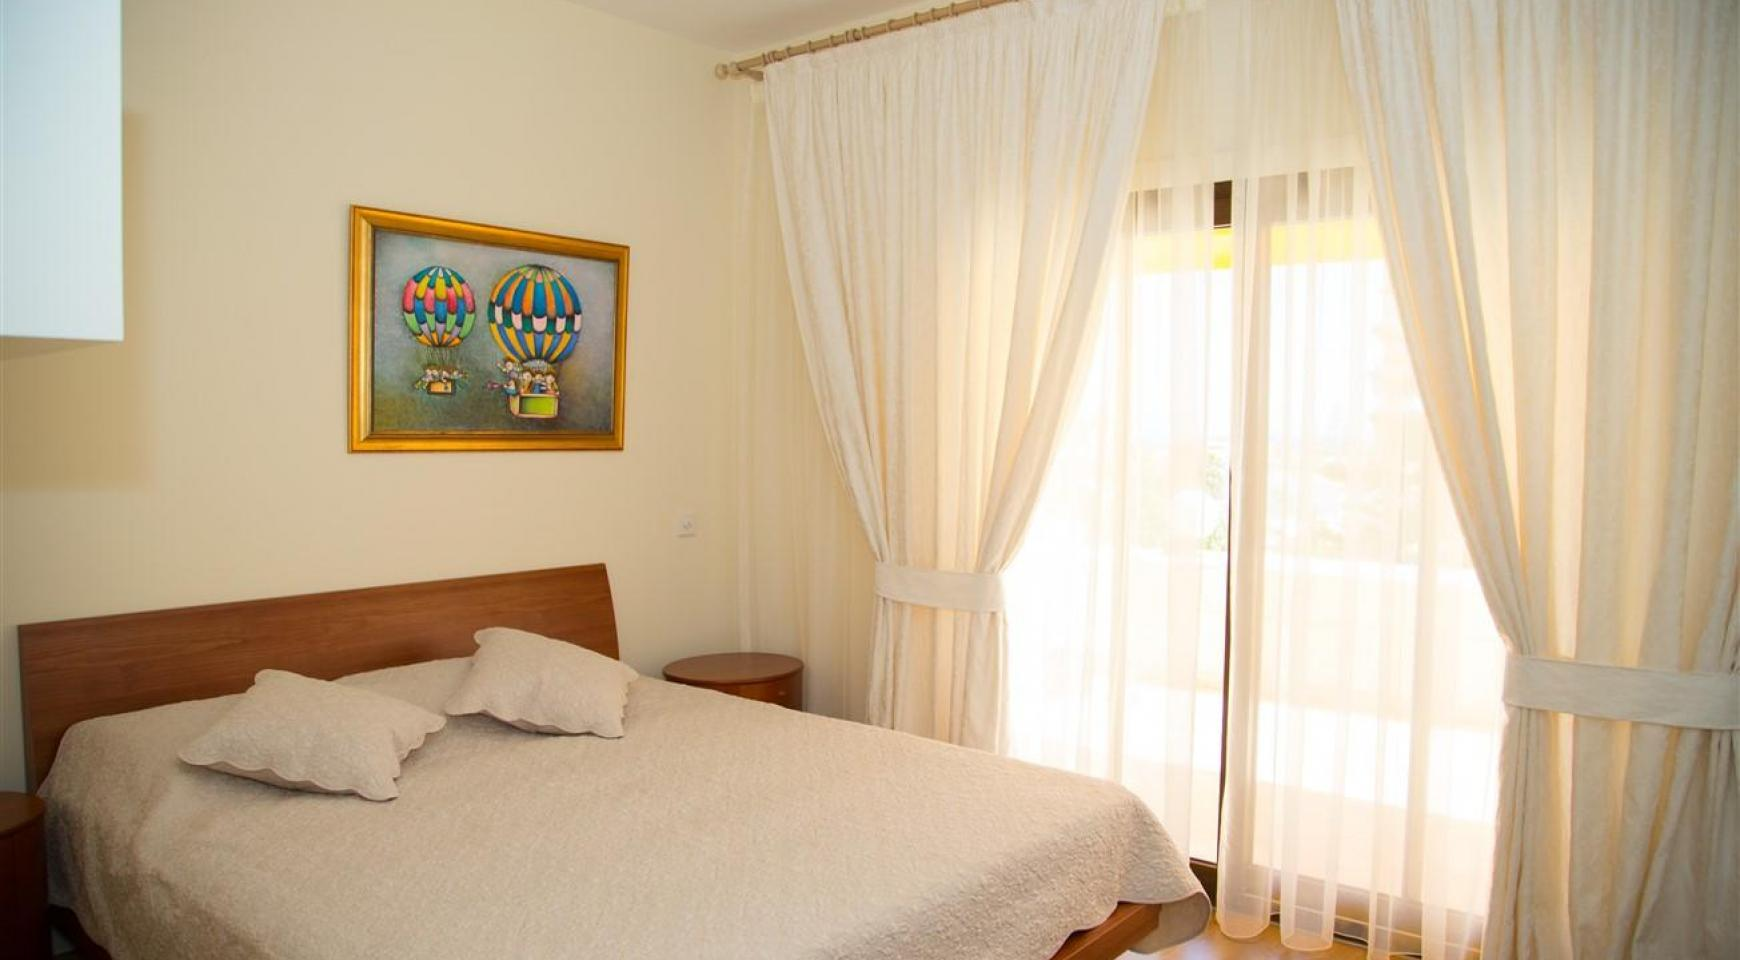 3 Bedroom Apartment in a Gated Complex by the Sea - 35